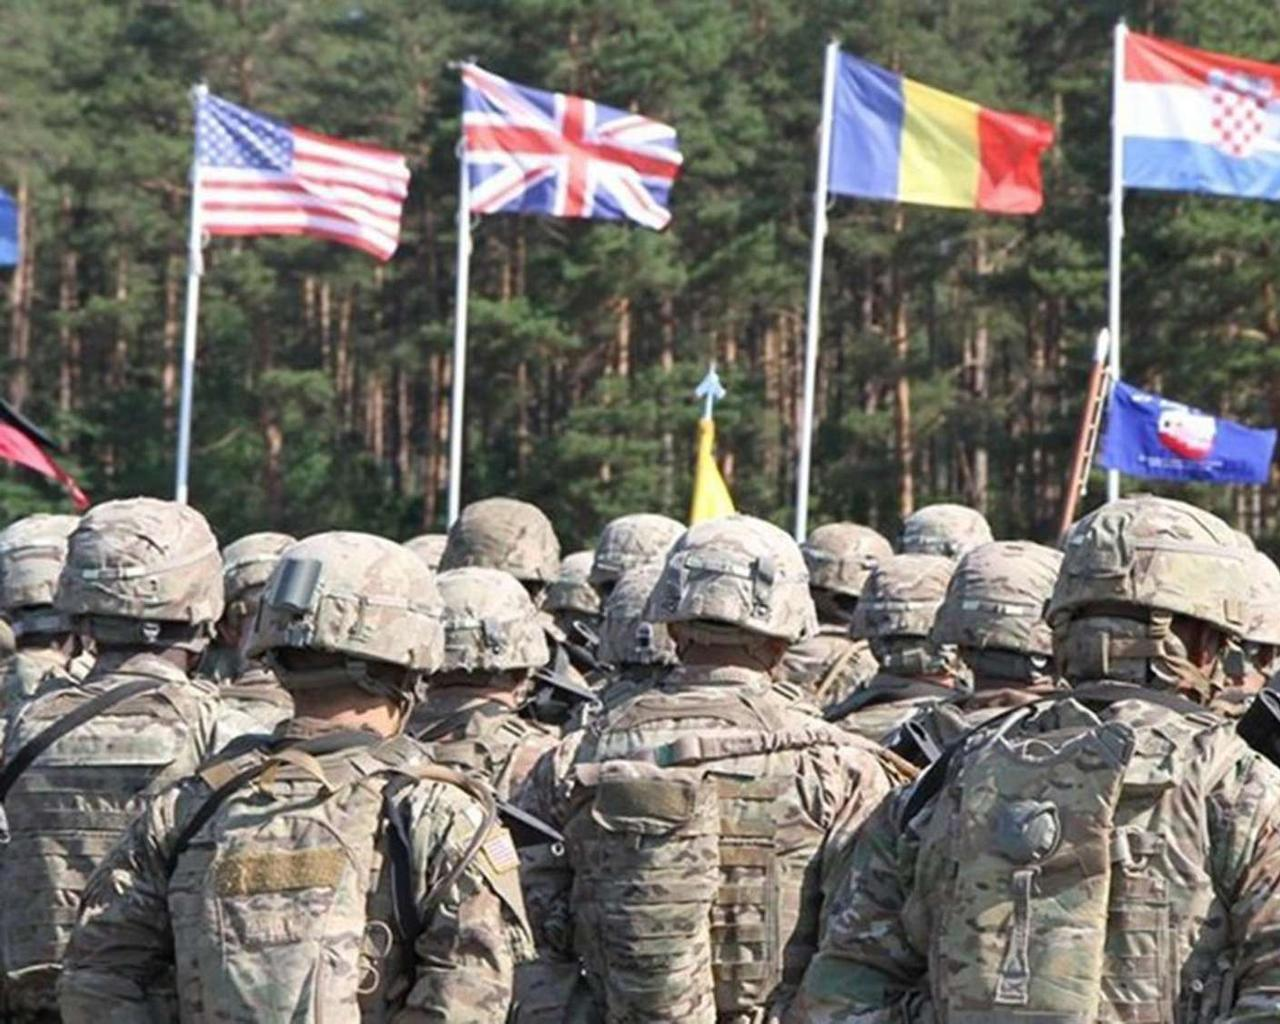 The planned U.S. military game will take place as a concern for the threats posed by China and Russia